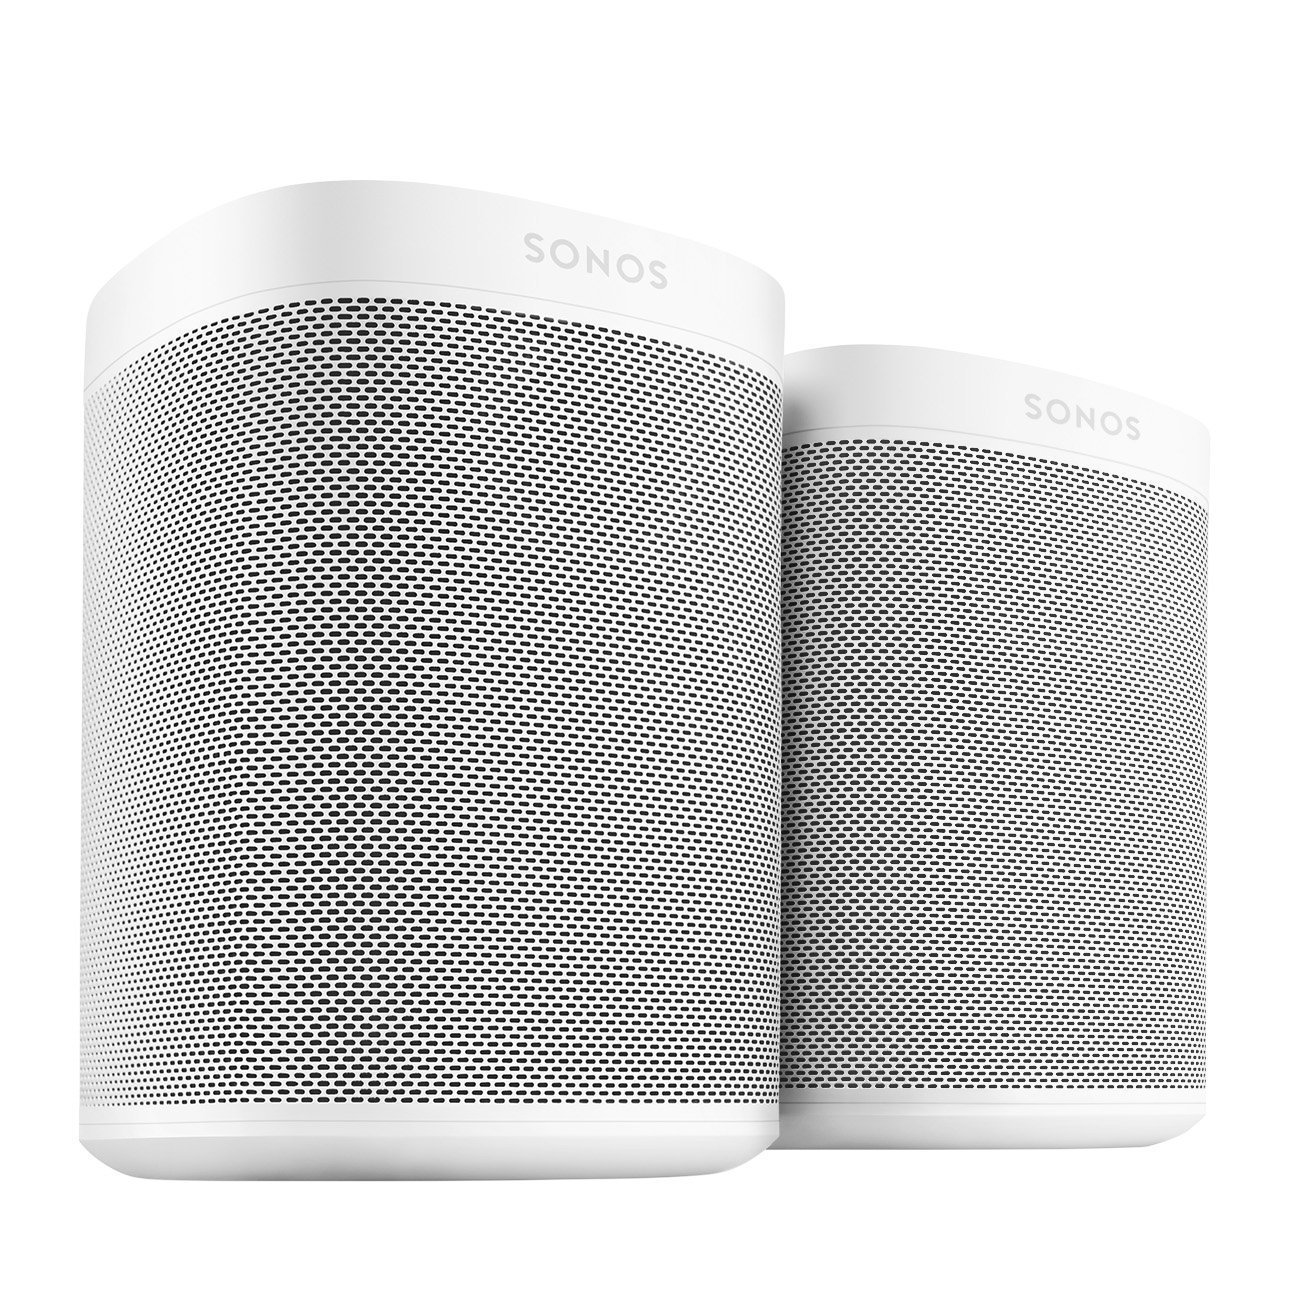 Sonos One (2-Pack) product image